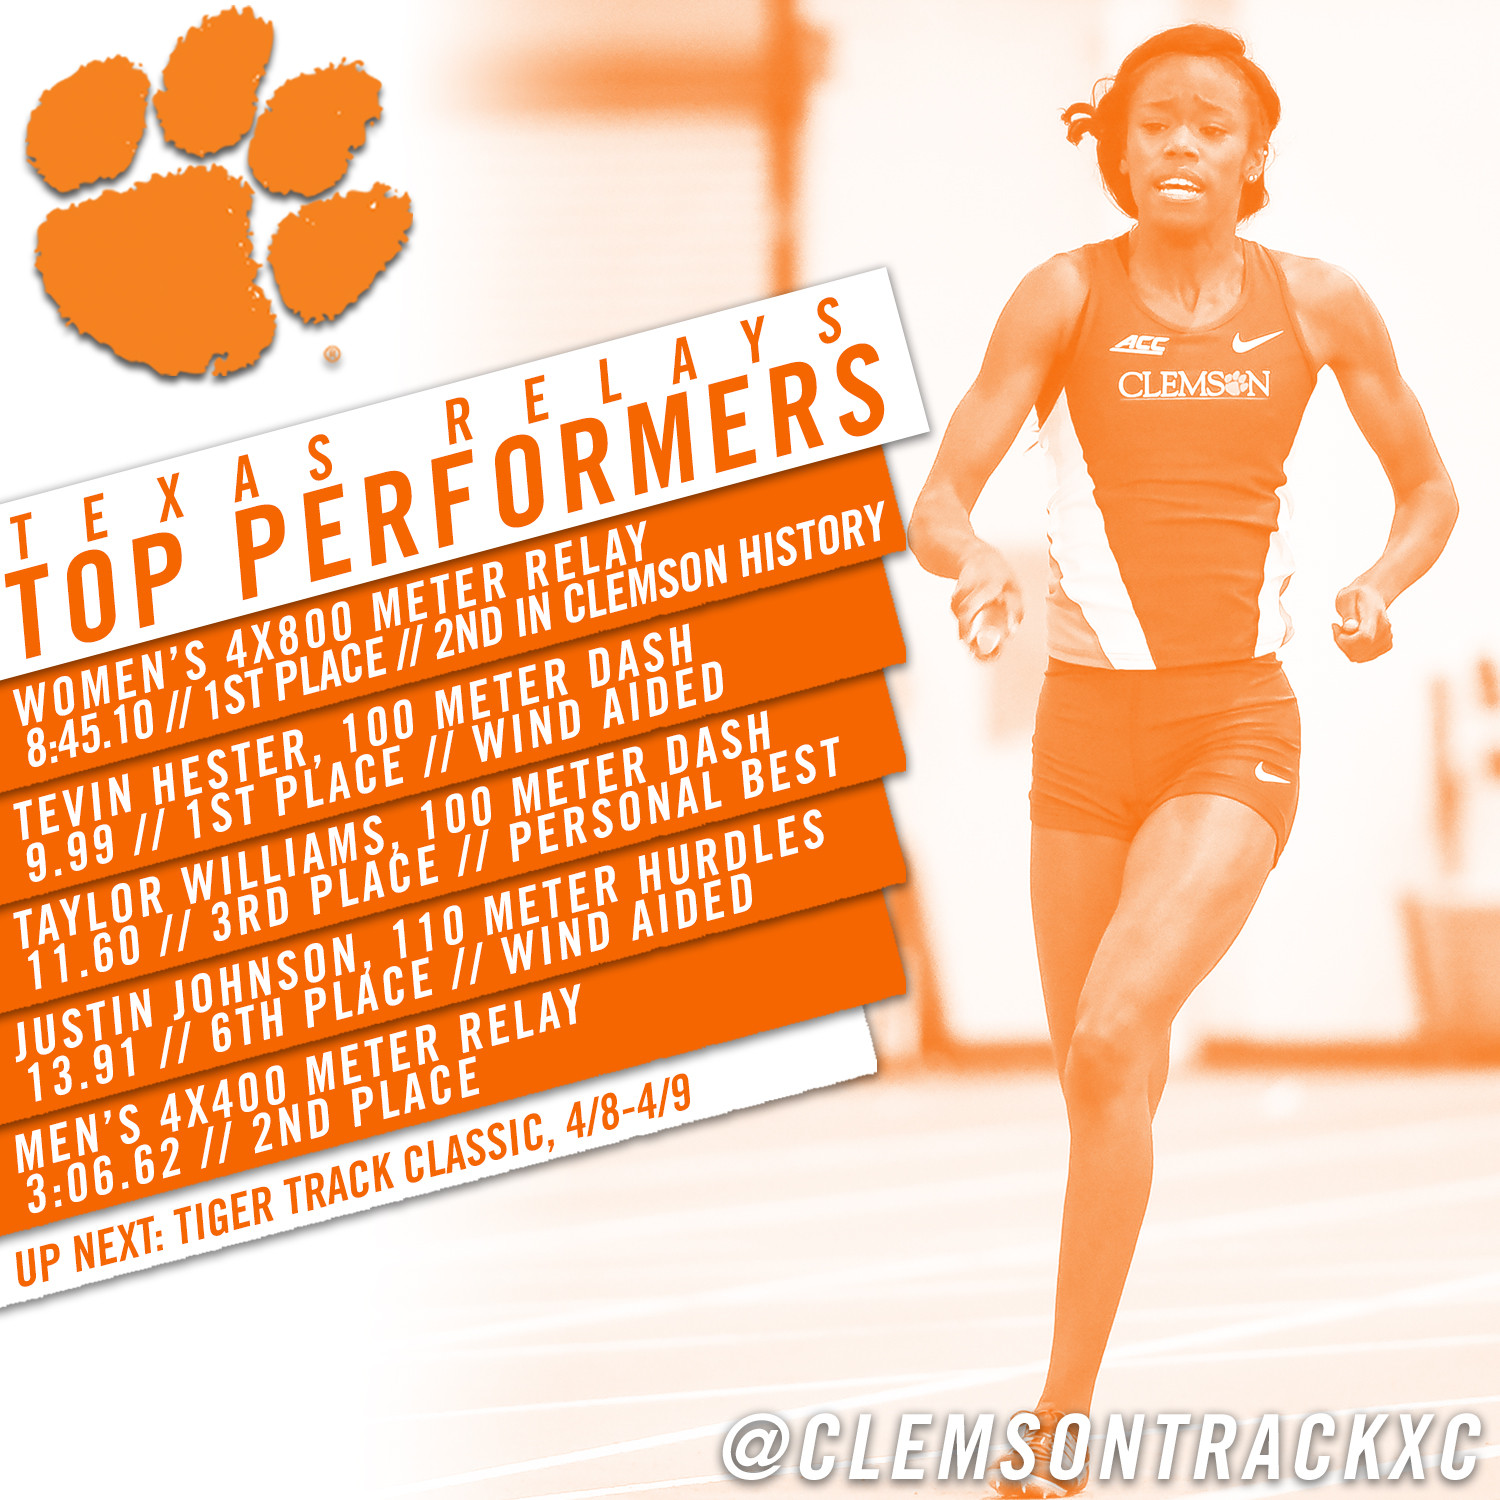 Tigers Finish Strong in Texas